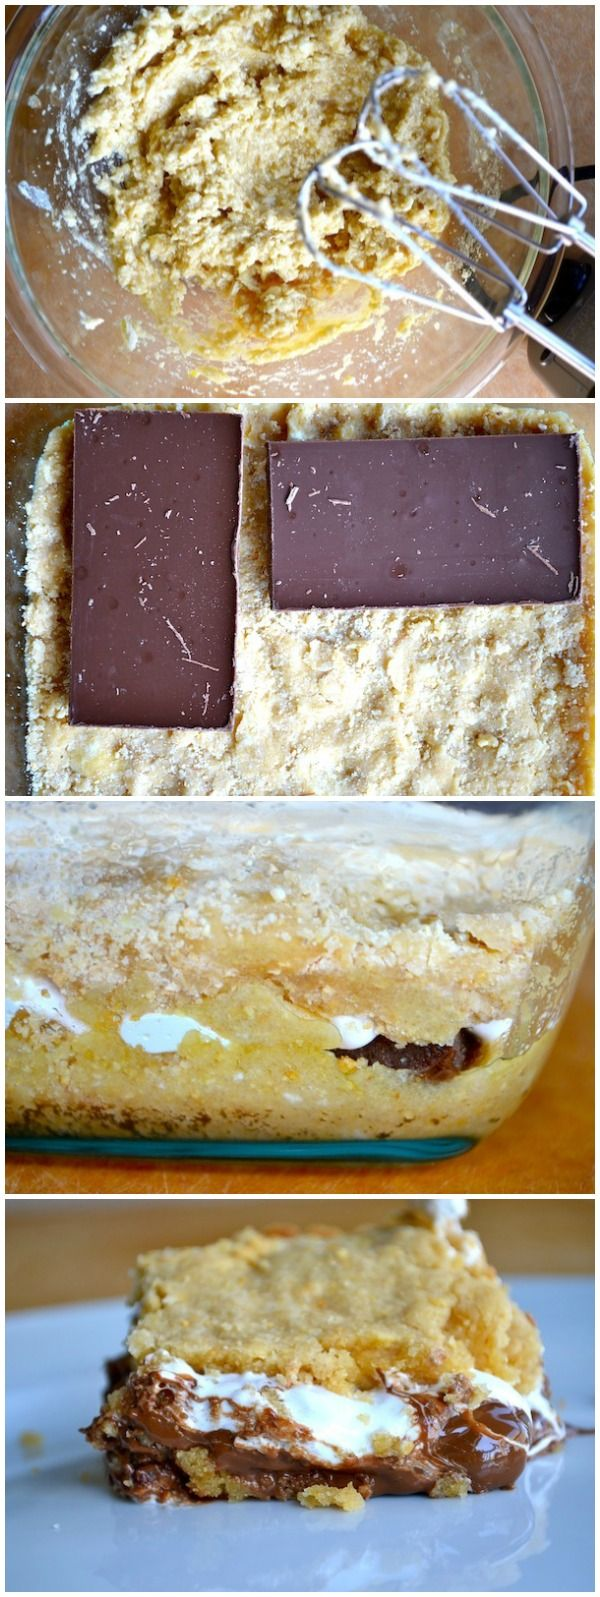 Baked s'mores bars. Sounds amaaaazing!